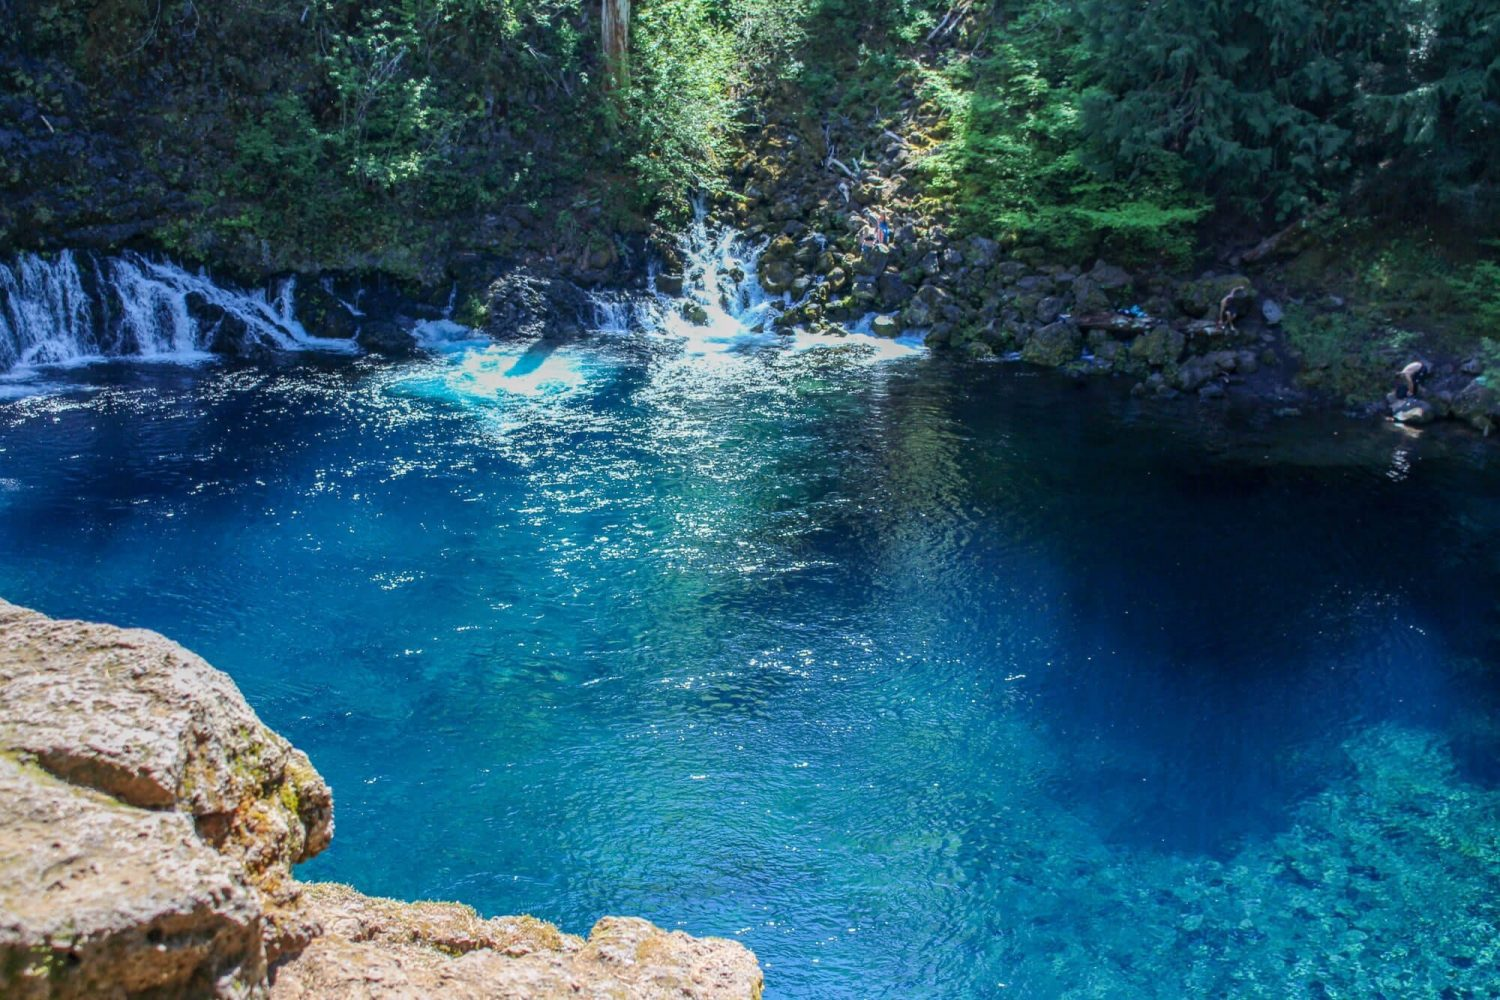 Tamolitch Blue Pool - Top 10 Central Oregon Winter Hikes